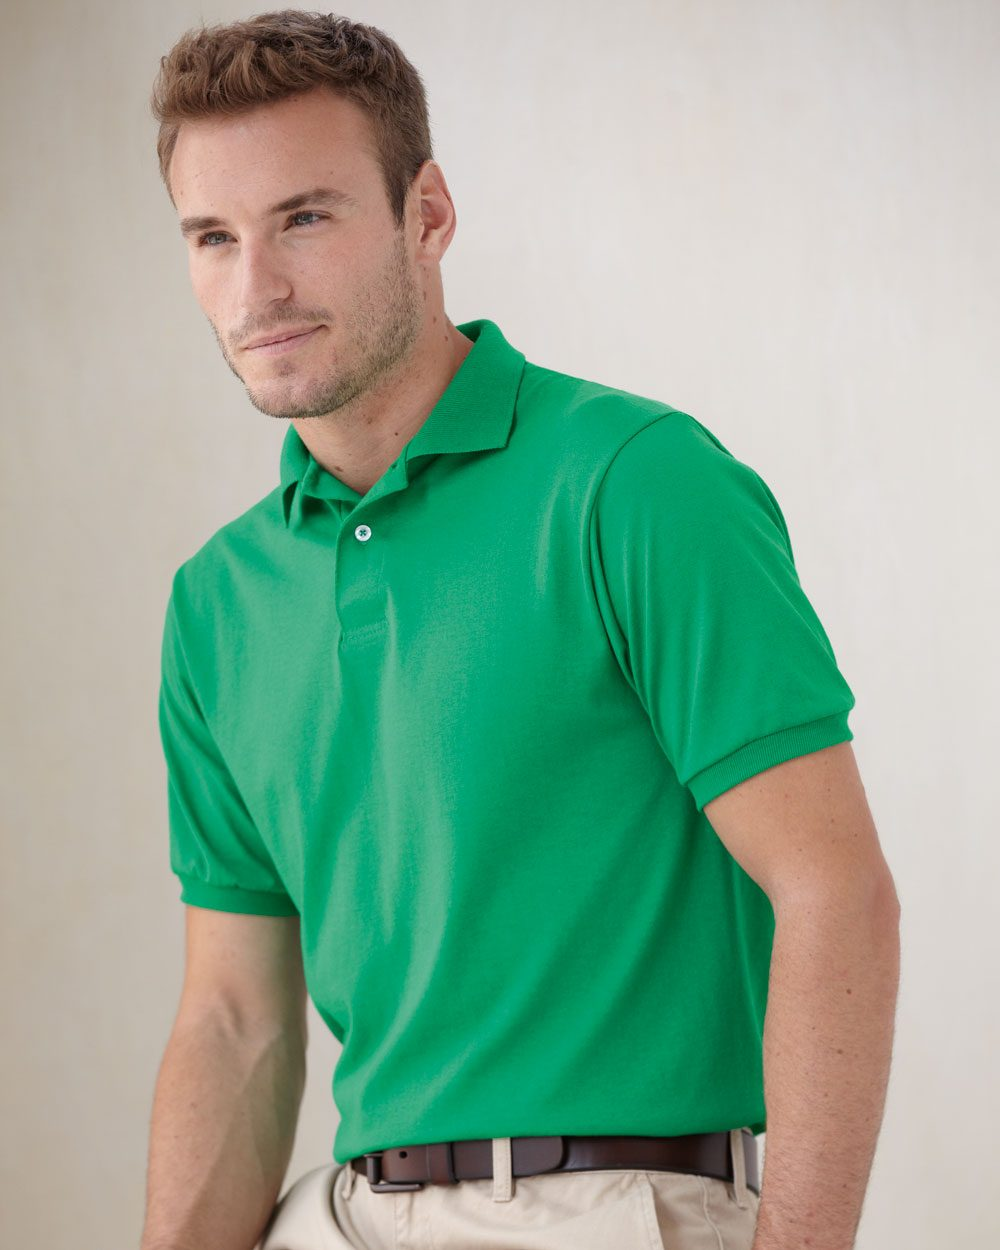 Stedman By Hanes 054X Blended JerseySport Shirt